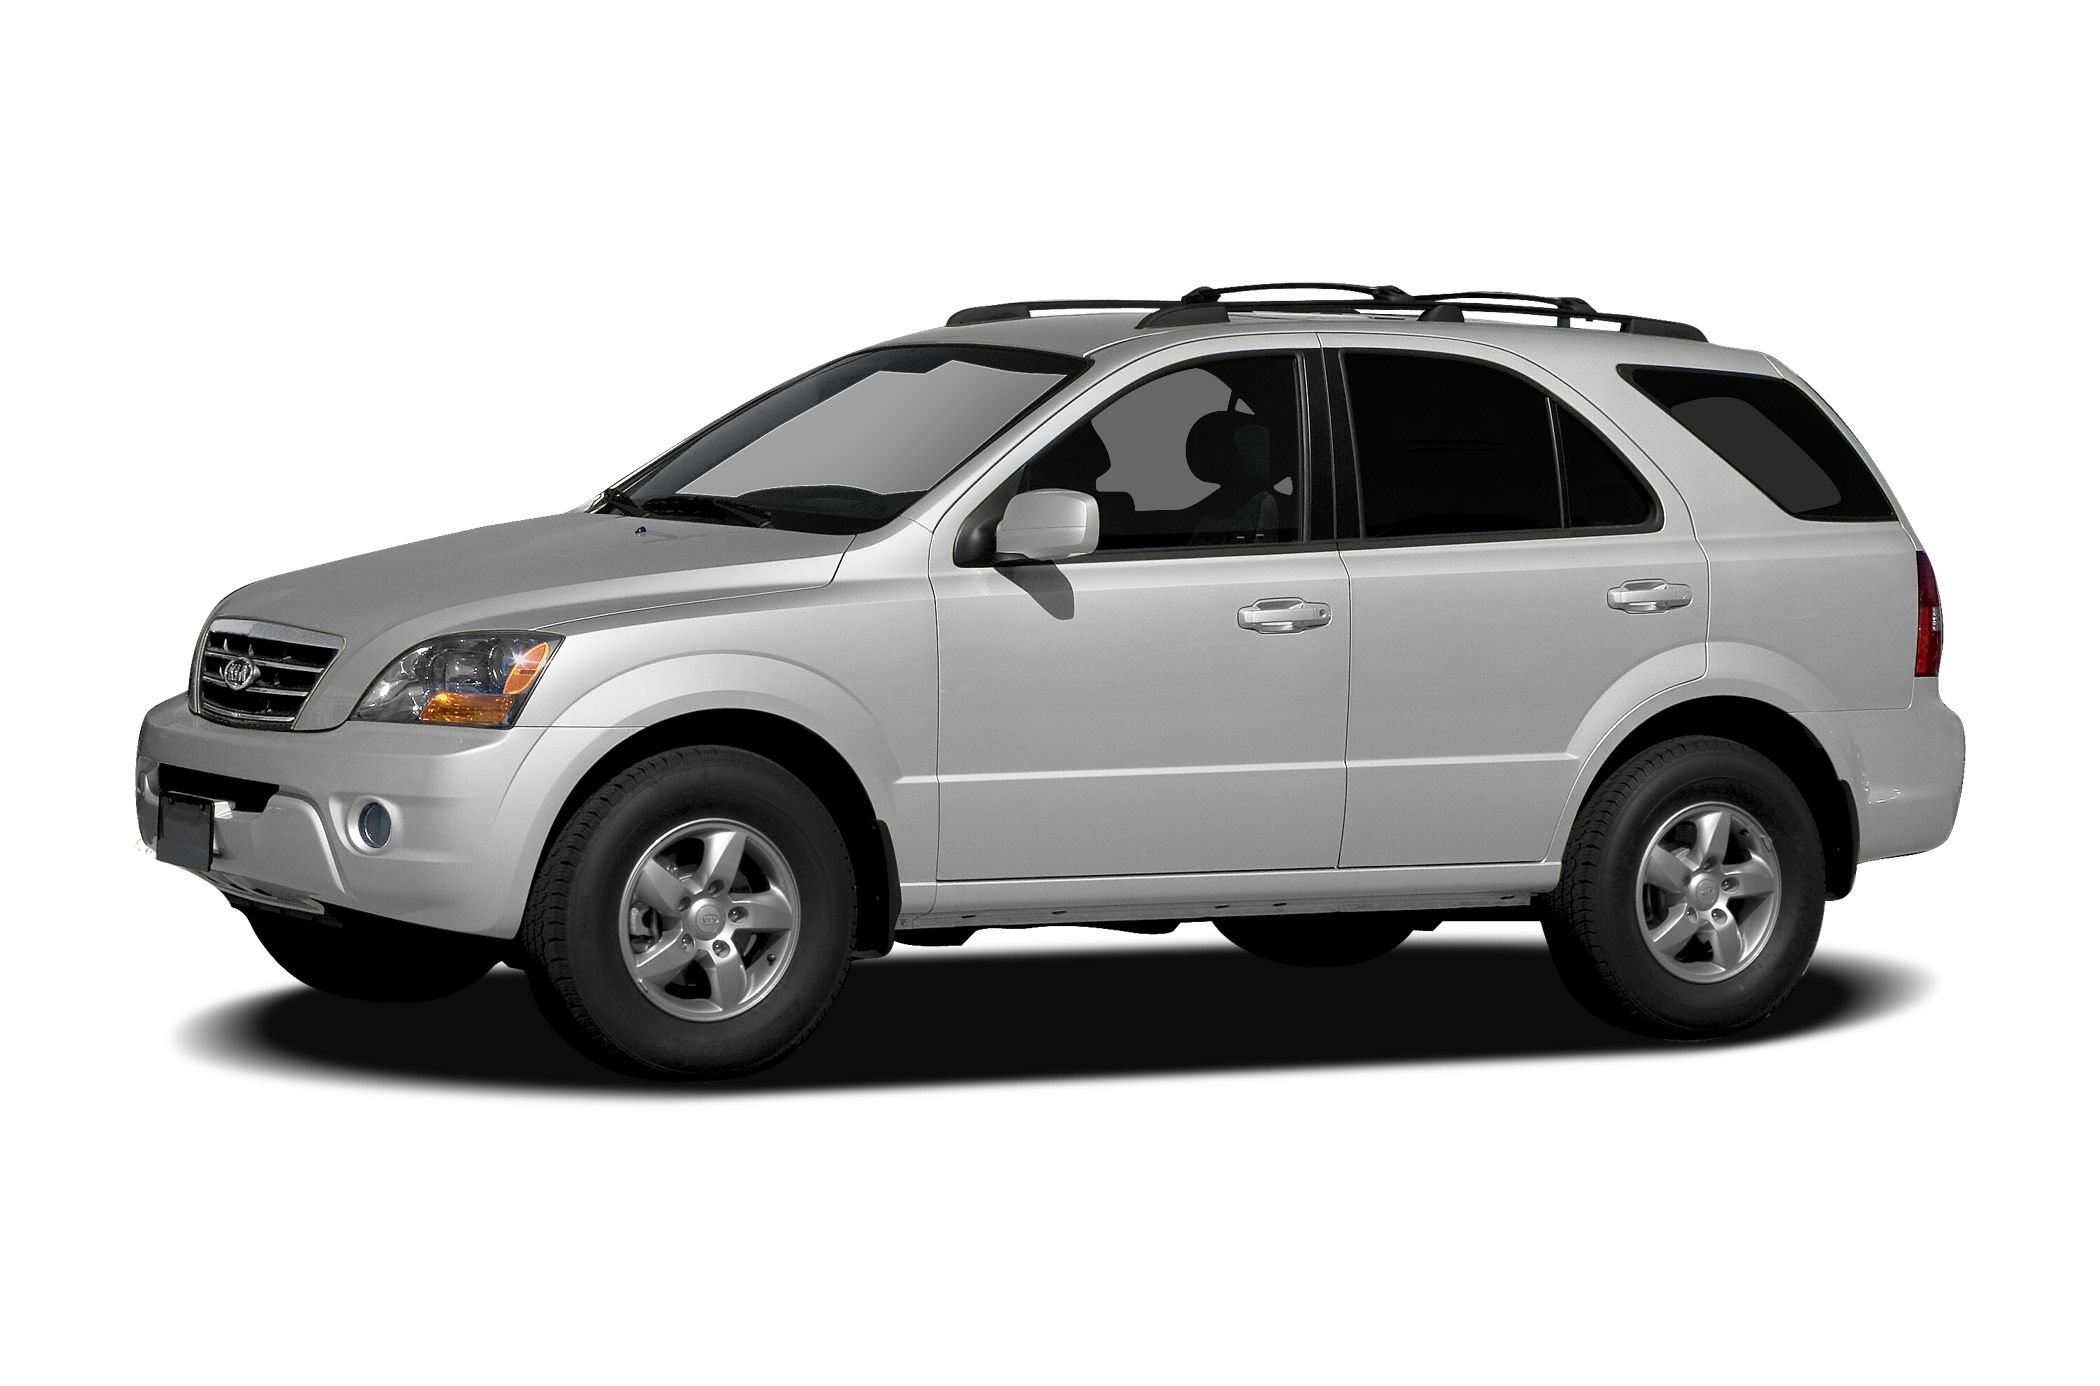 2009 Kia Sorento LX ONE OWNER V6 SORRENTO WITH ULTRA LOW MILEAGE MULLINAX CERTIFIED PRE-OWNED me